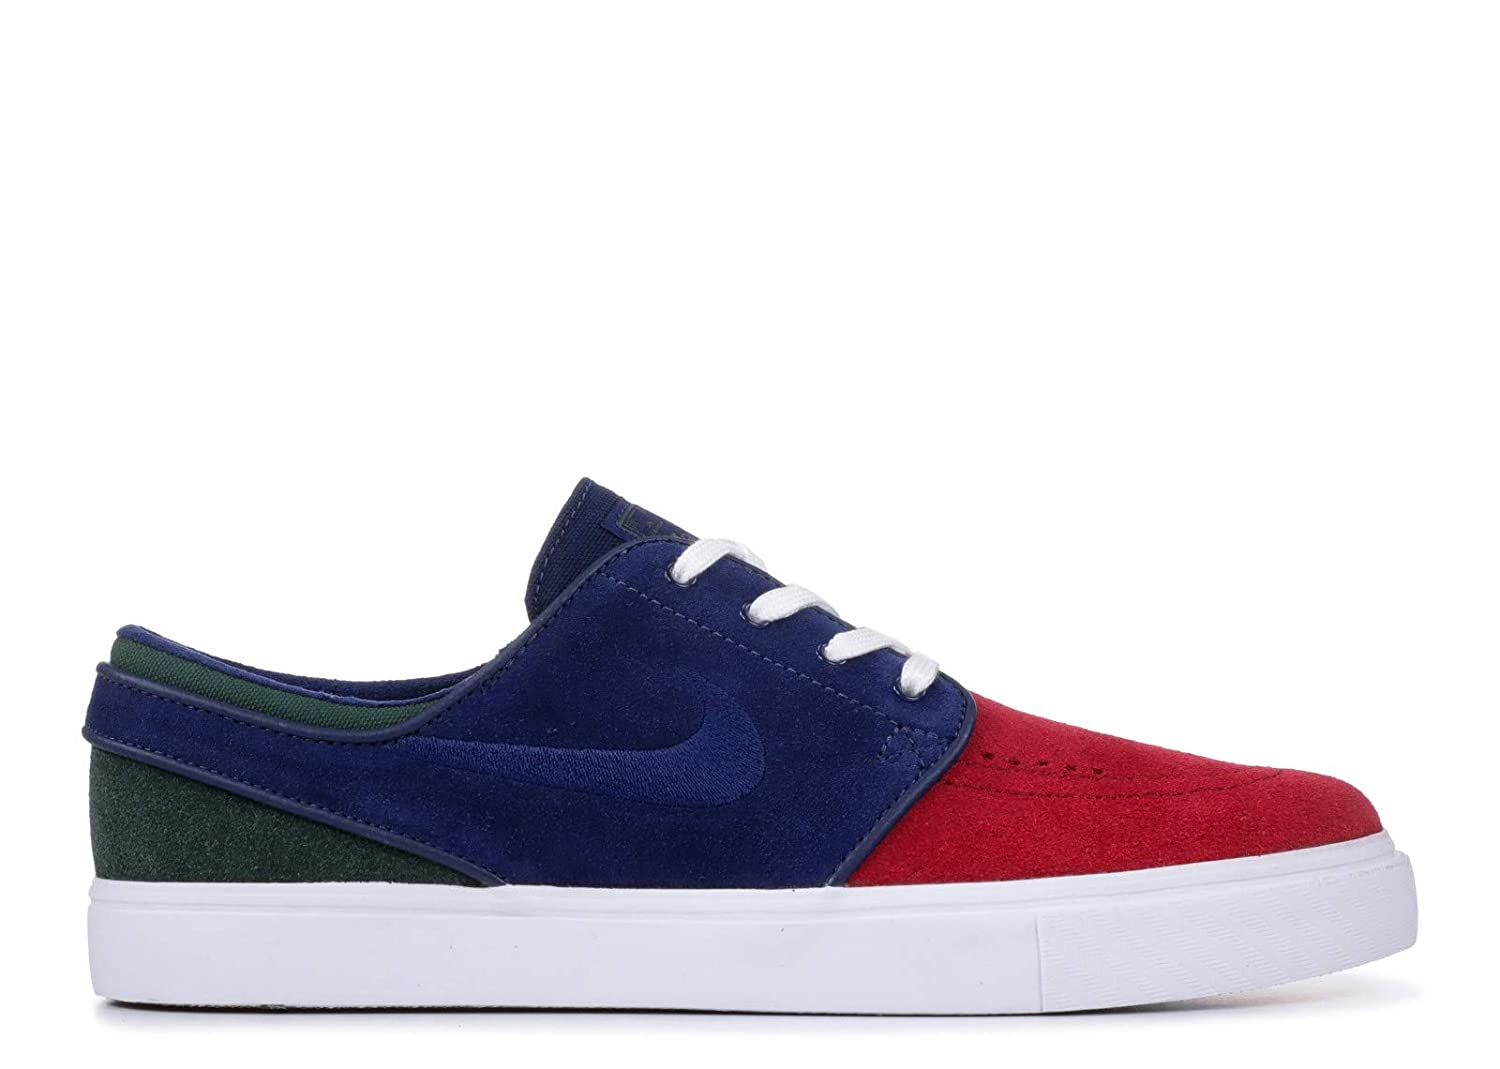 9238962d85 Nike Zoom Stefan Janoski Mens Fashion-Sneakers 333824-641_8.5 - RED  Crush/Blue Void-White-Midnight Green